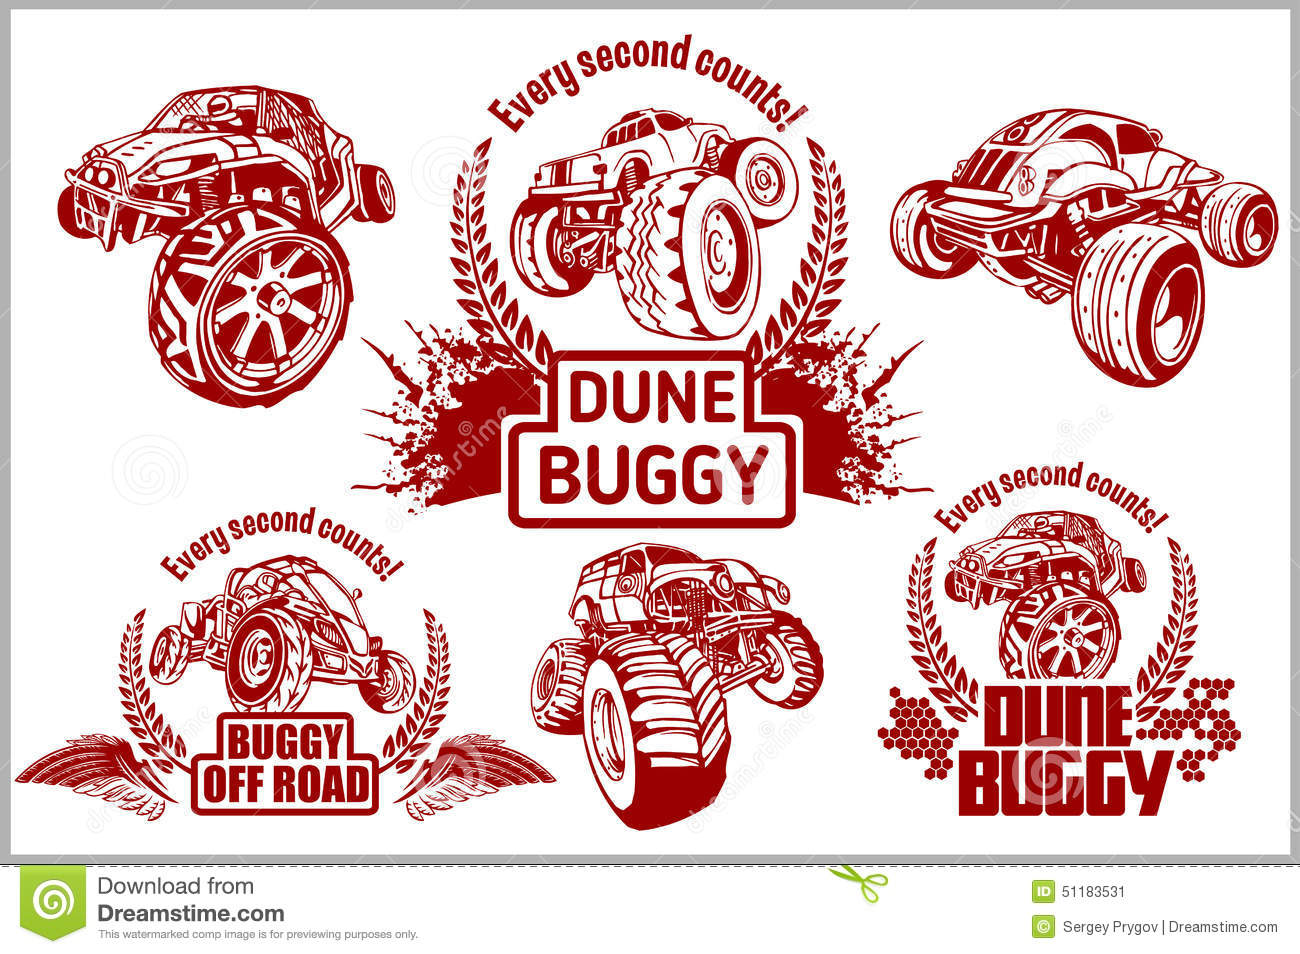 buggy car 4x4 with Stock Illustration Dune Buggy Monster Truck Vector Badge Illustration Image51183531 on  also Stock Illustration Dune Buggy Monster Truck Vector Badge Illustration Image51183531 likewise Pictures videos as well Ariel Nomad Off Roader Lands In Us Starting At 78k 2016 05 24 moreover P607128.